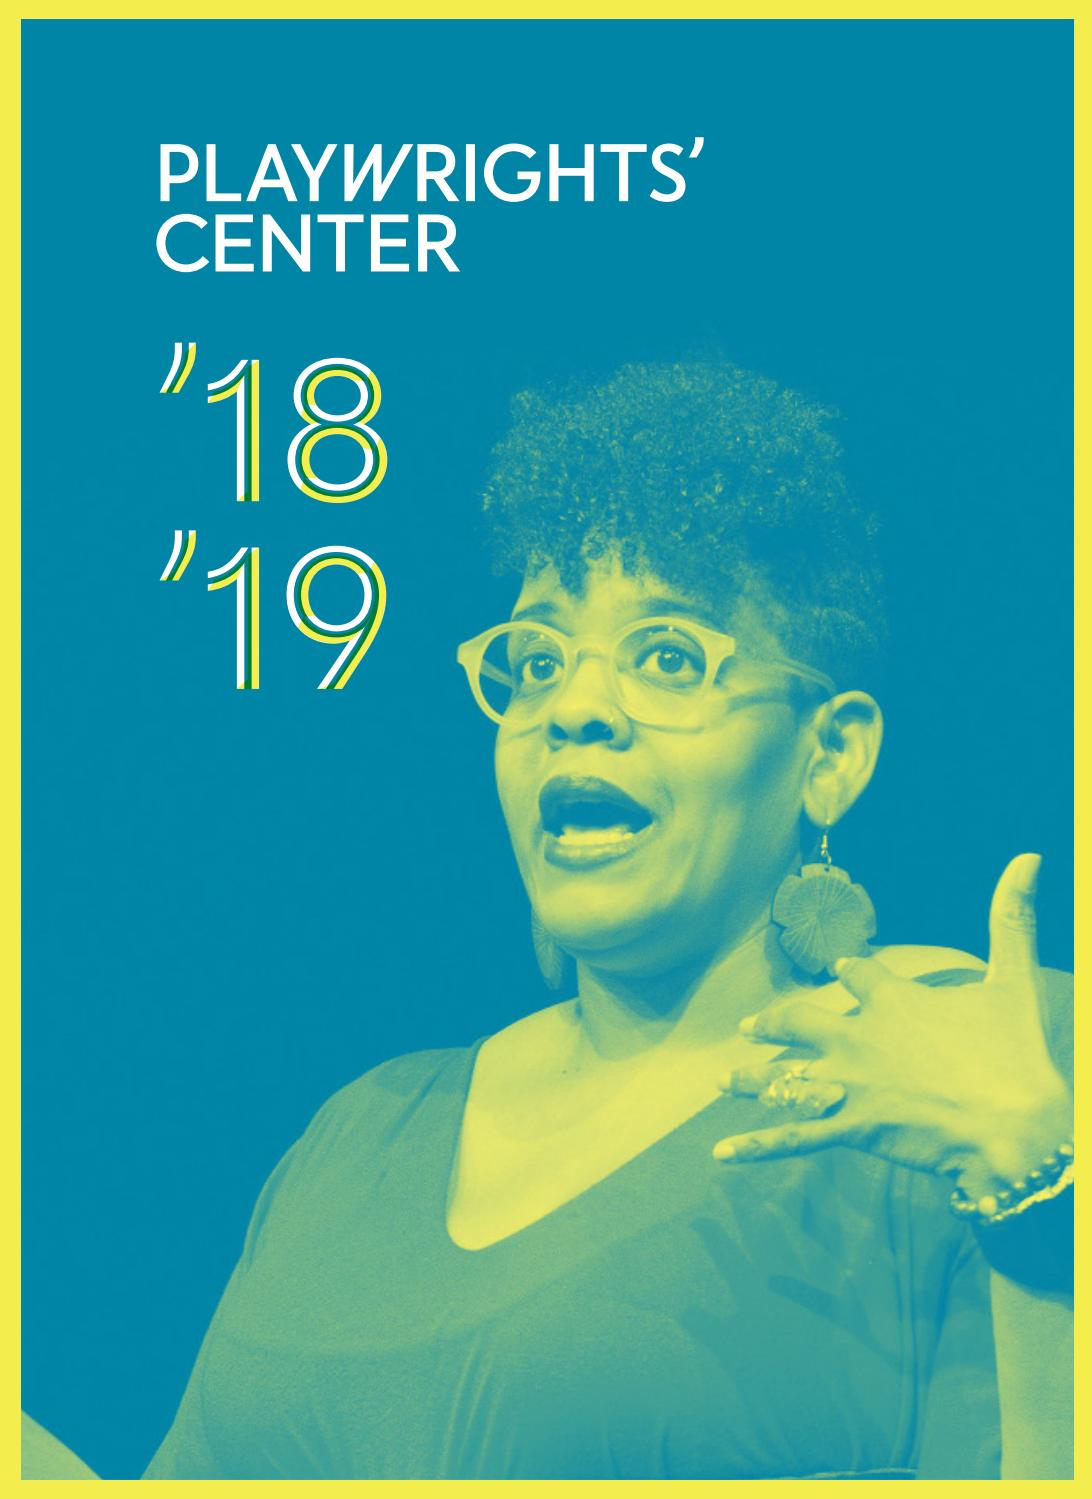 2018-19 Season Booklet by Playwrights' Center - issuu